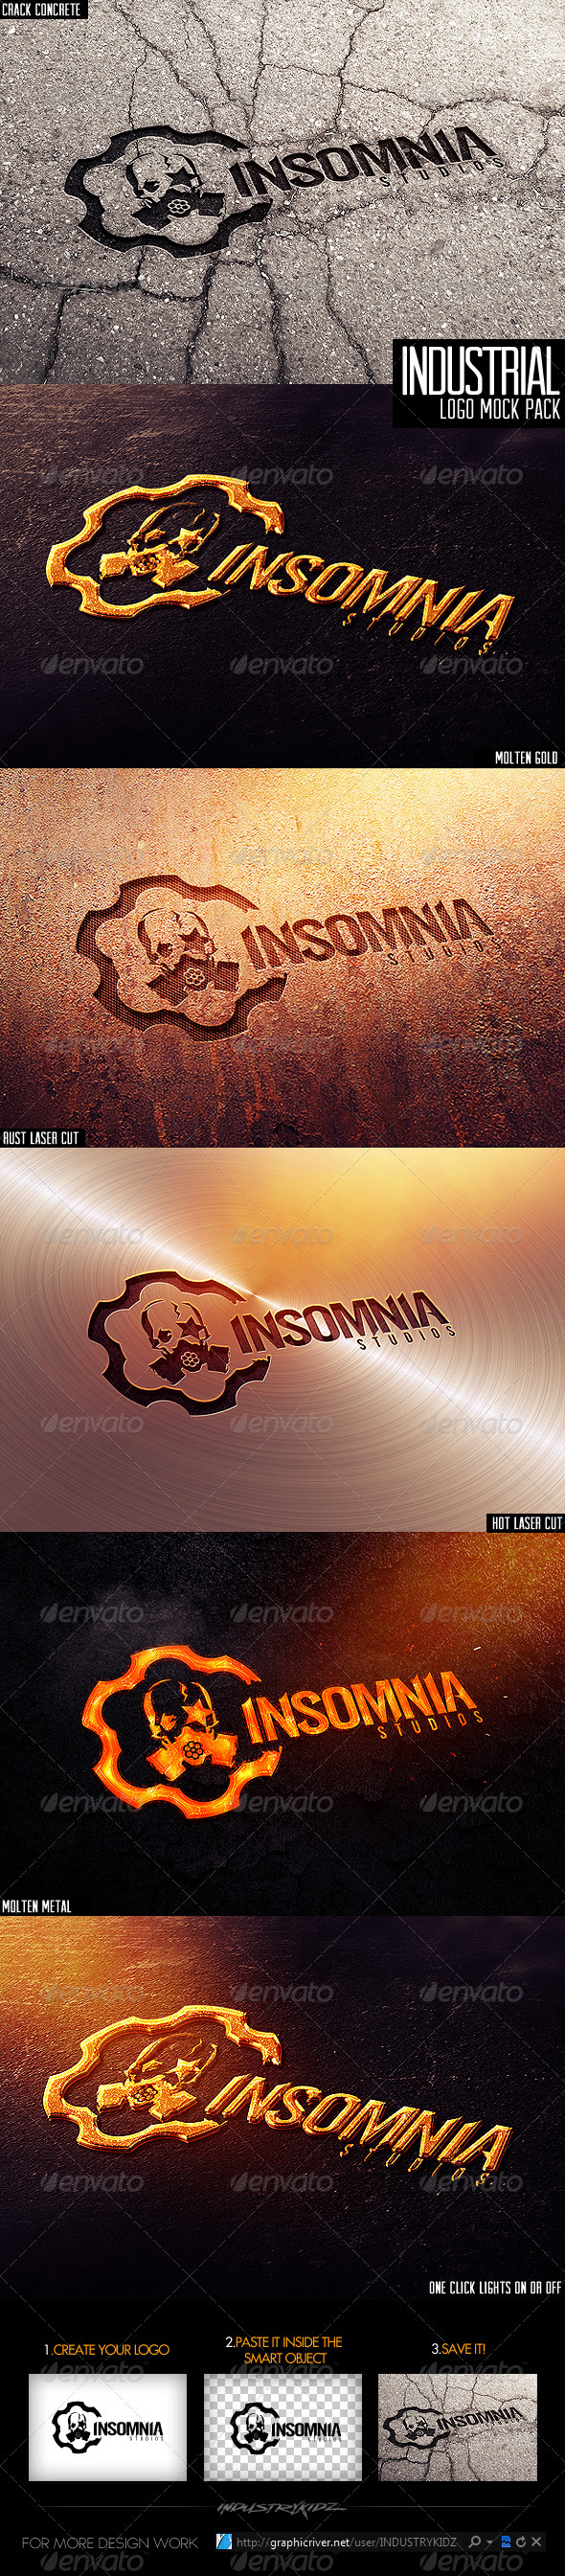 Industrial Photorealistic Logo Mock-Up - Logo Product Mock-Ups